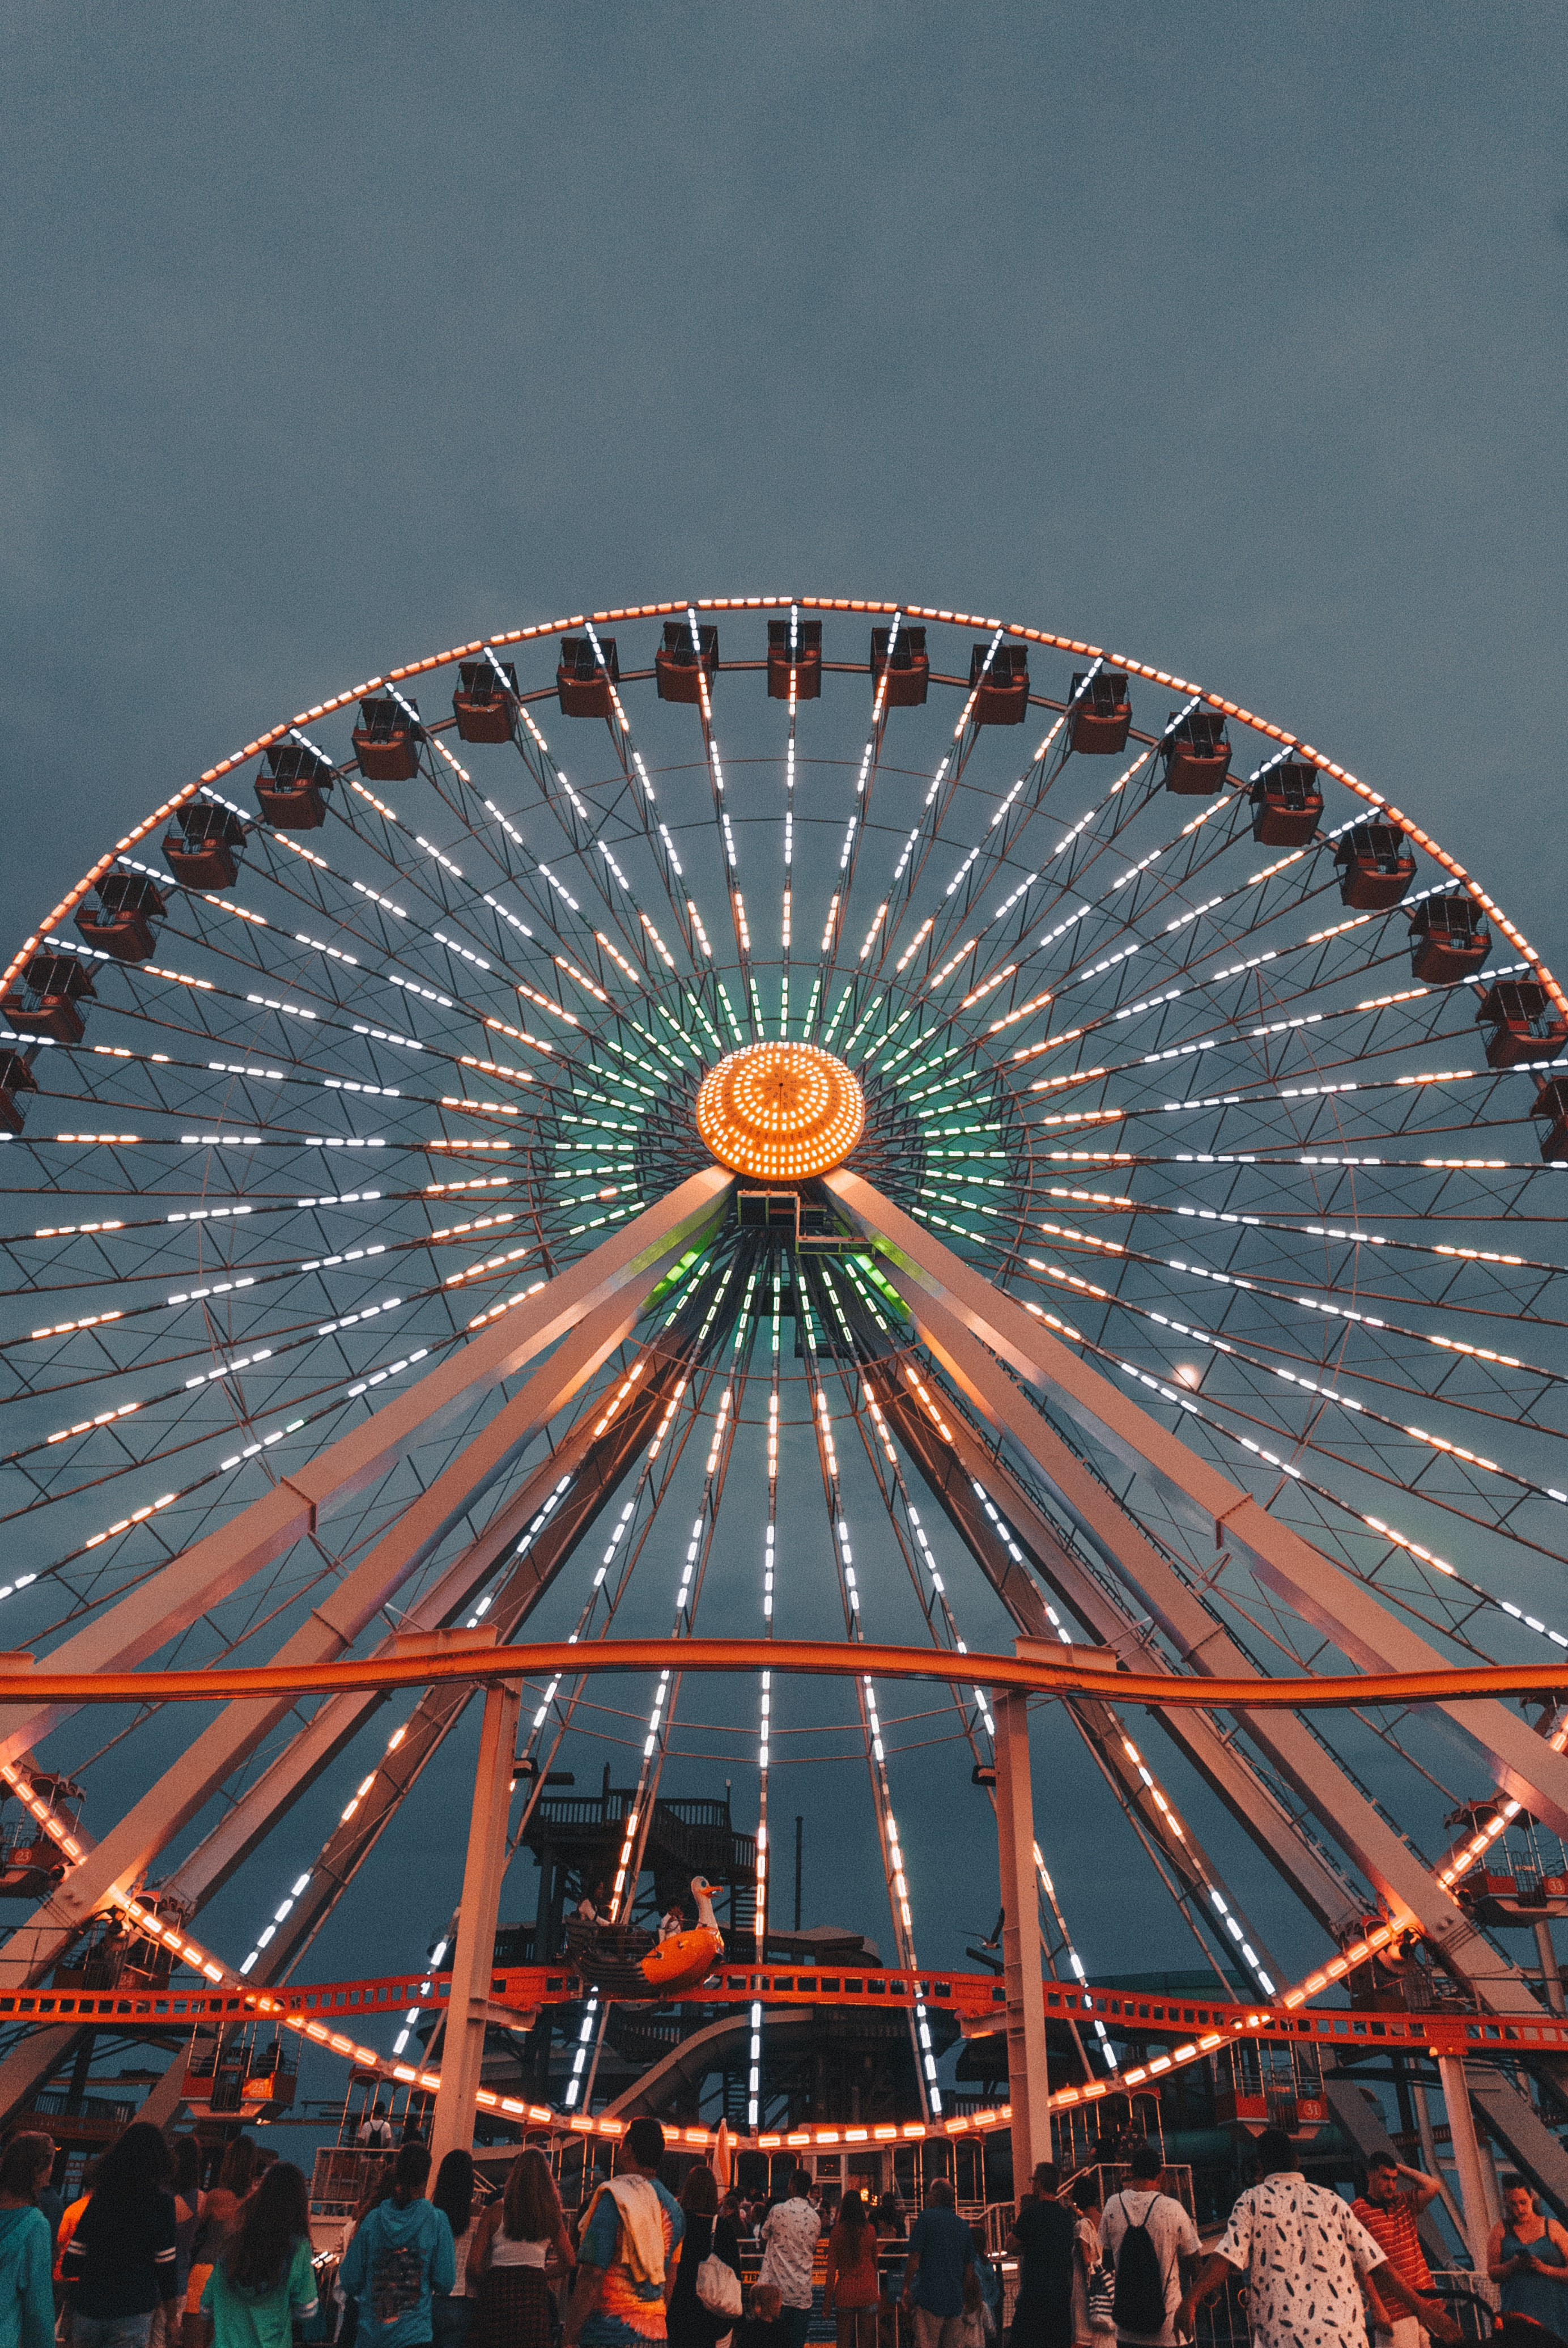 people in front of ferris wheel under gray sky